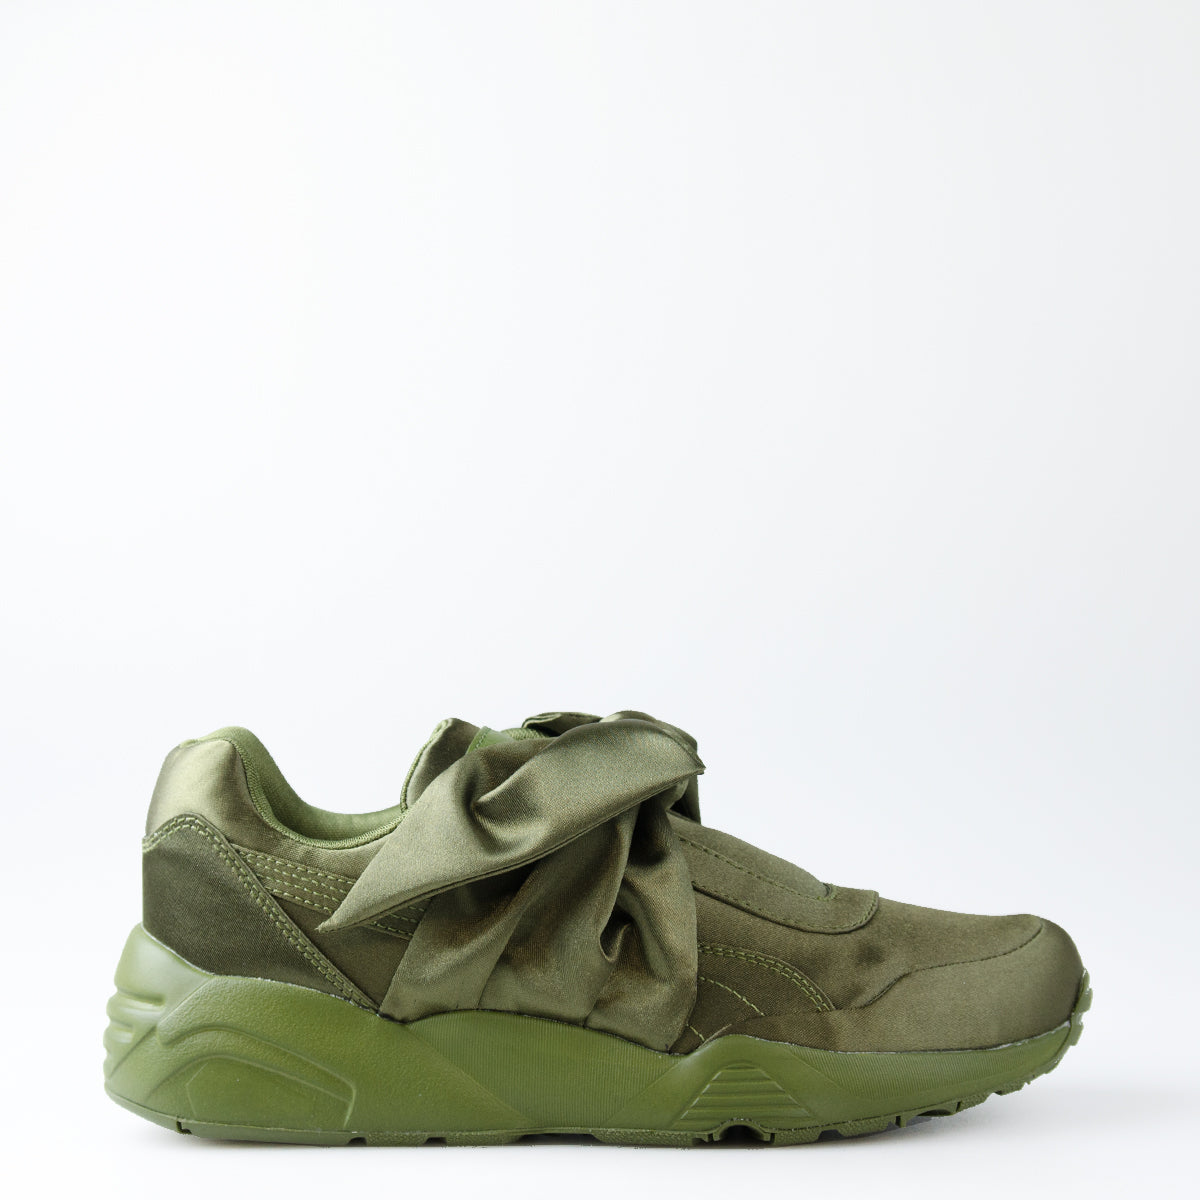 new style 51376 e5195 Women's Puma X Fenty by Rihanna Bow Sneakers Olive Green ...